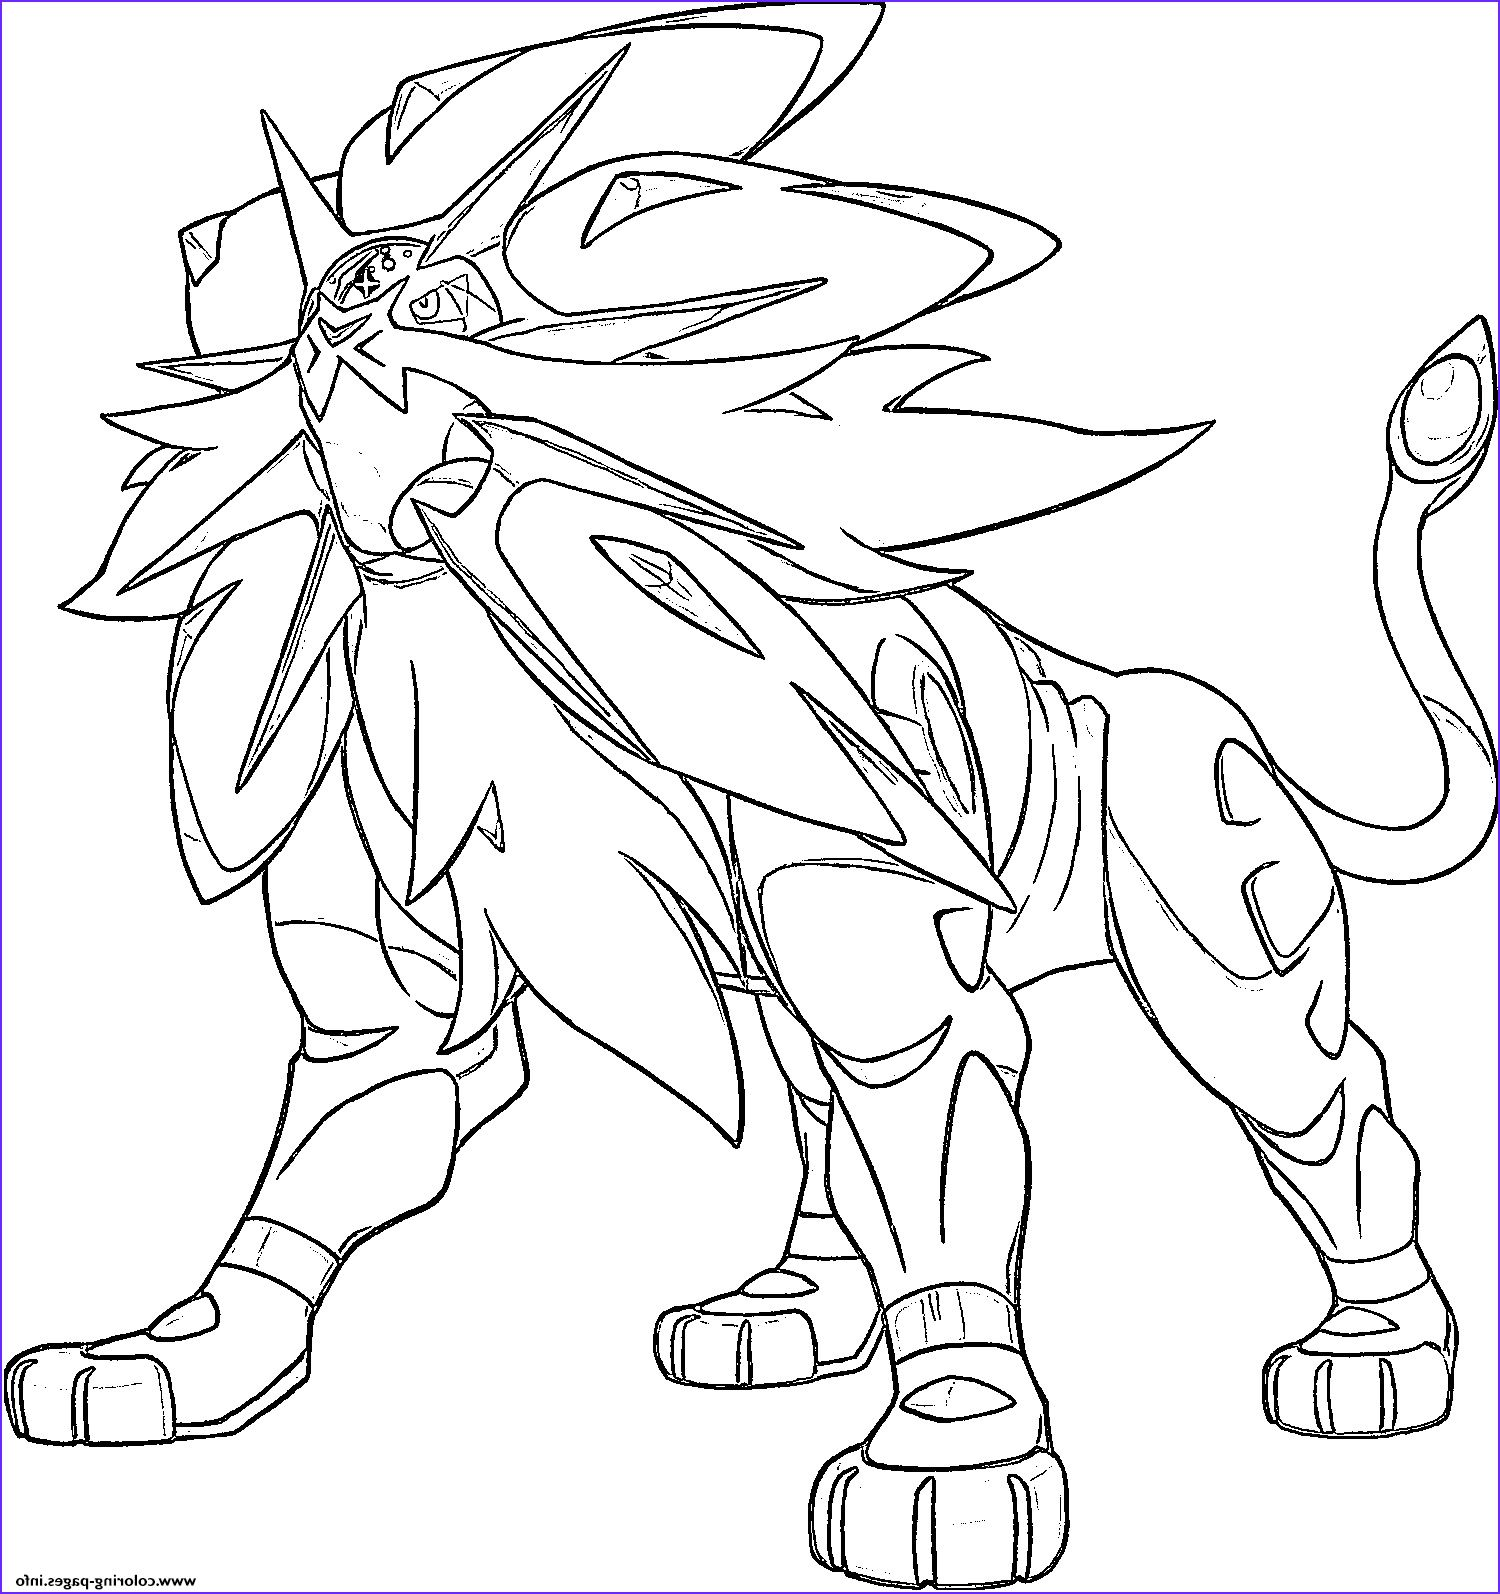 Pin By J Hendershot On Coloring Pages Pokemon Coloring Pages Pokemon Coloring Pokemon Coloring Sheets